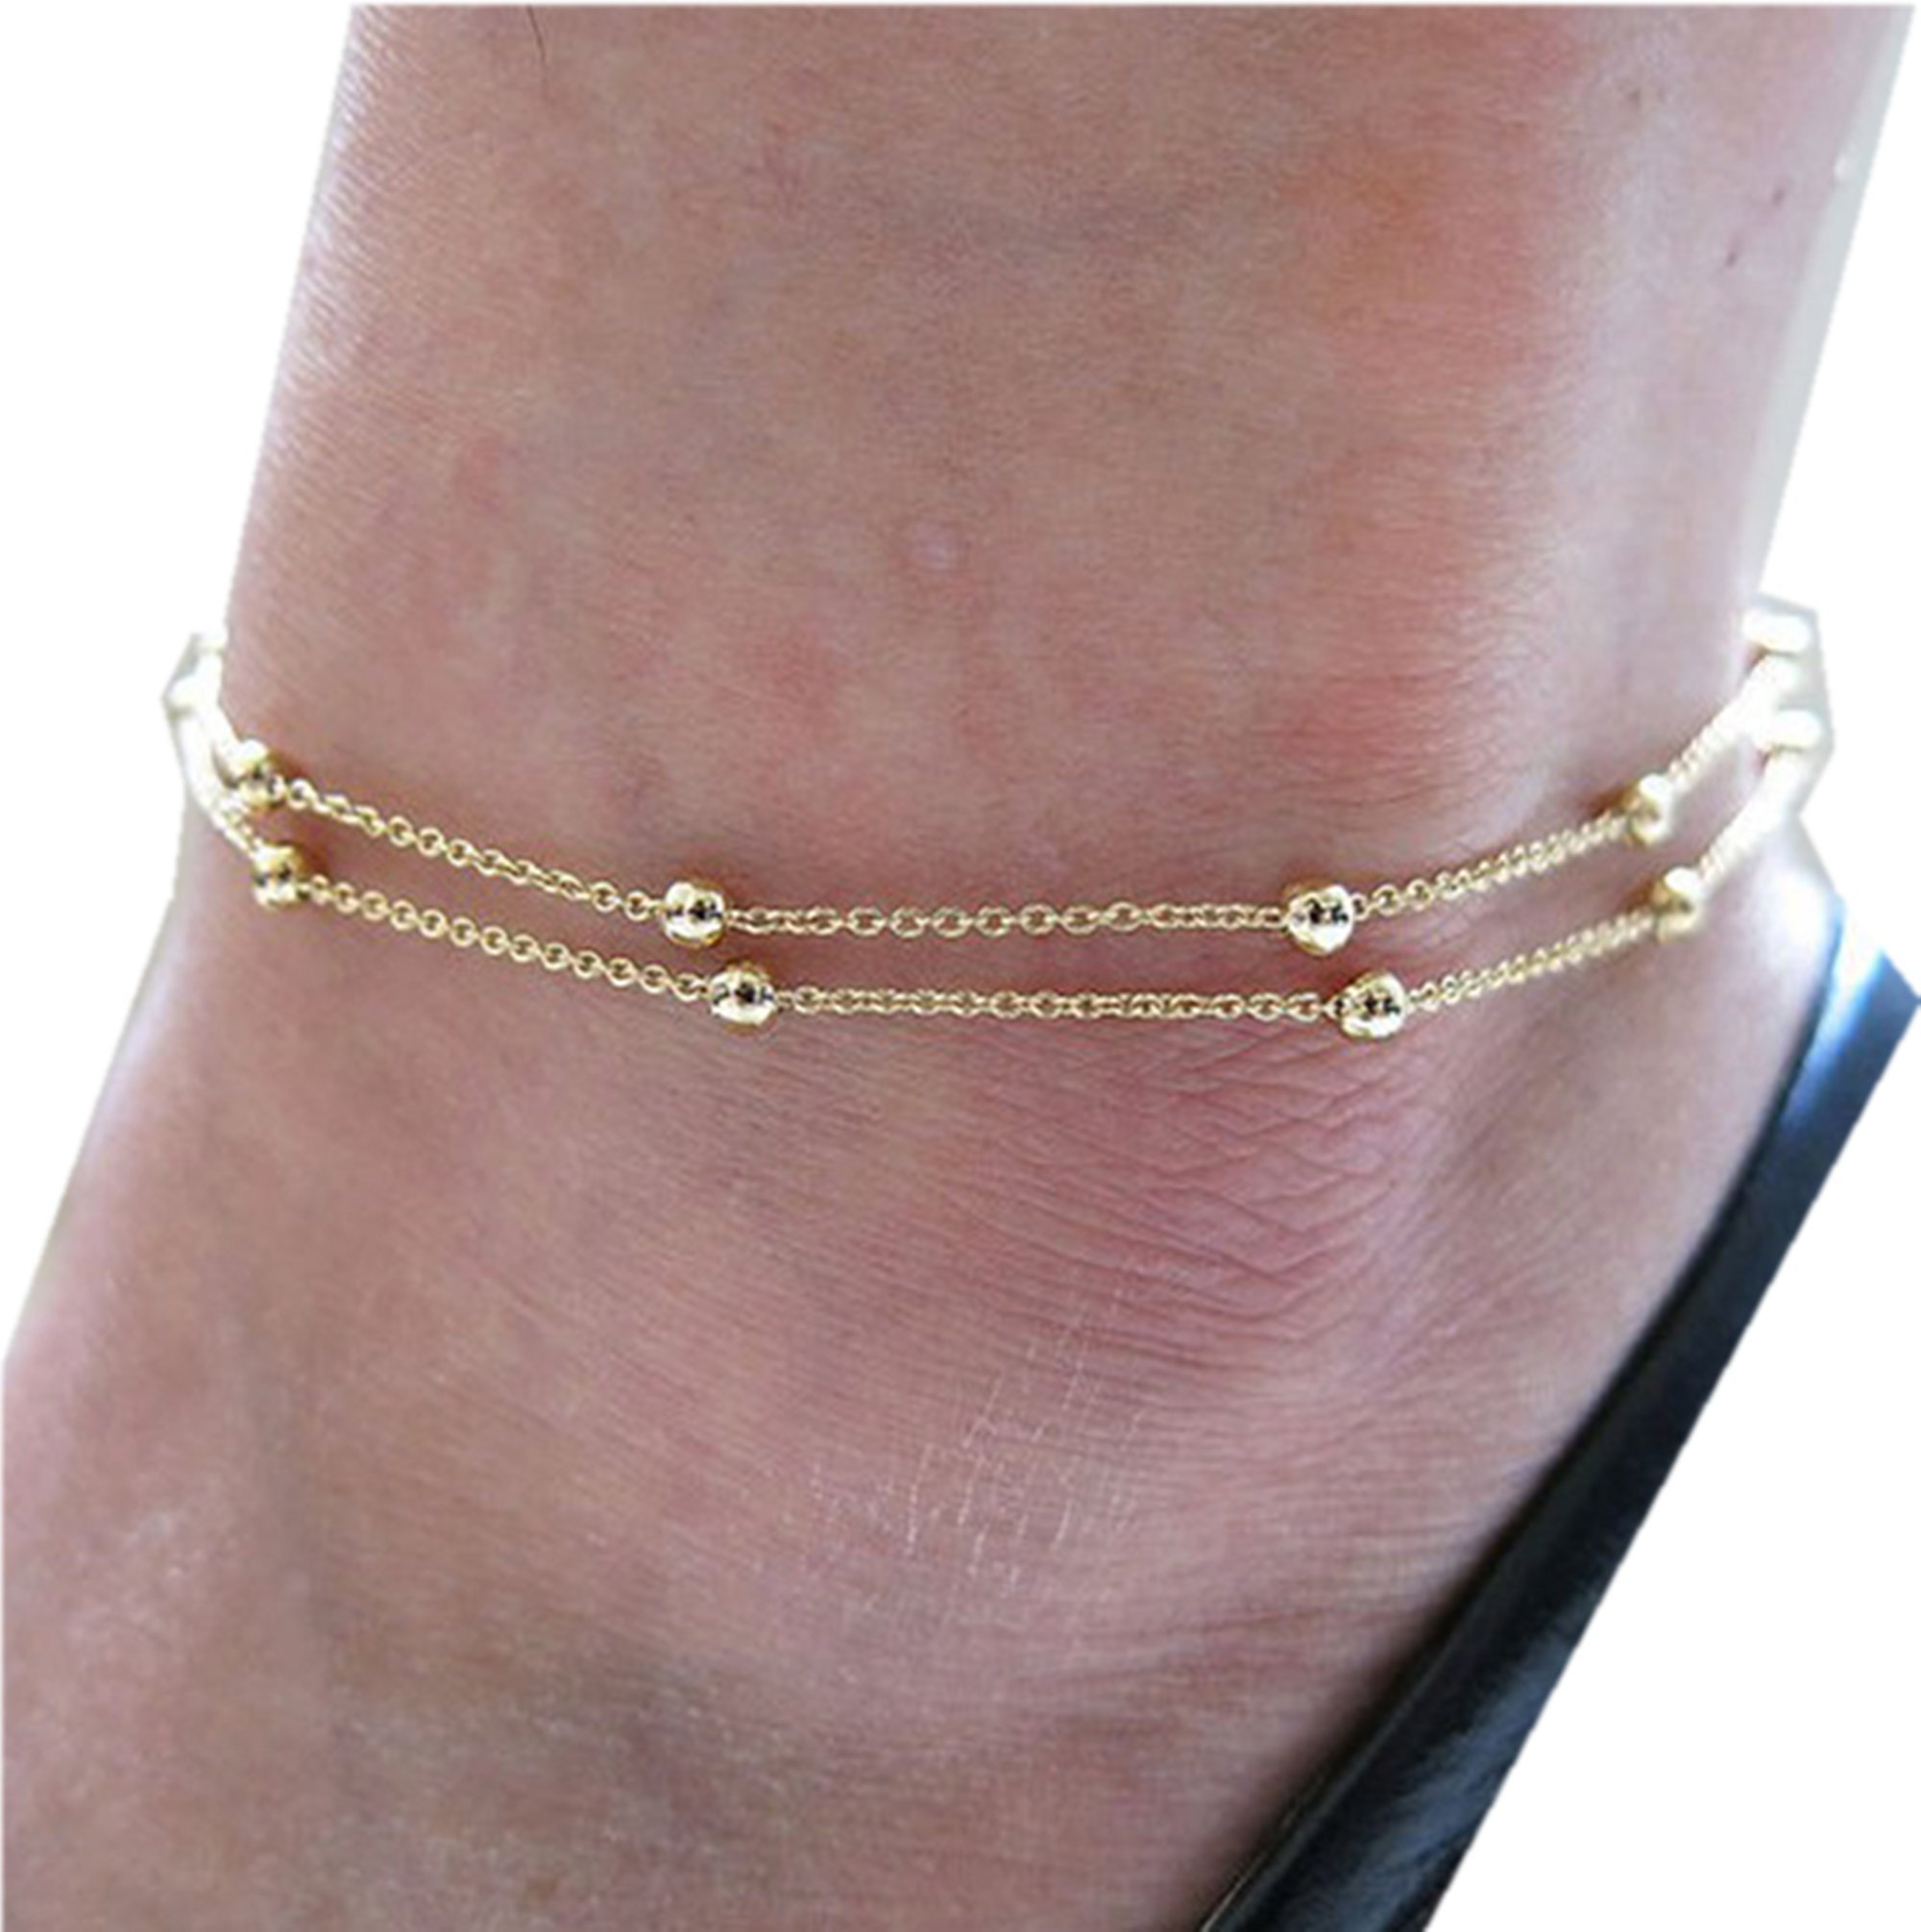 popular shipping anklet bracelets watches silver gold free on orders jewelry bracelet product black ankle overstock over hills